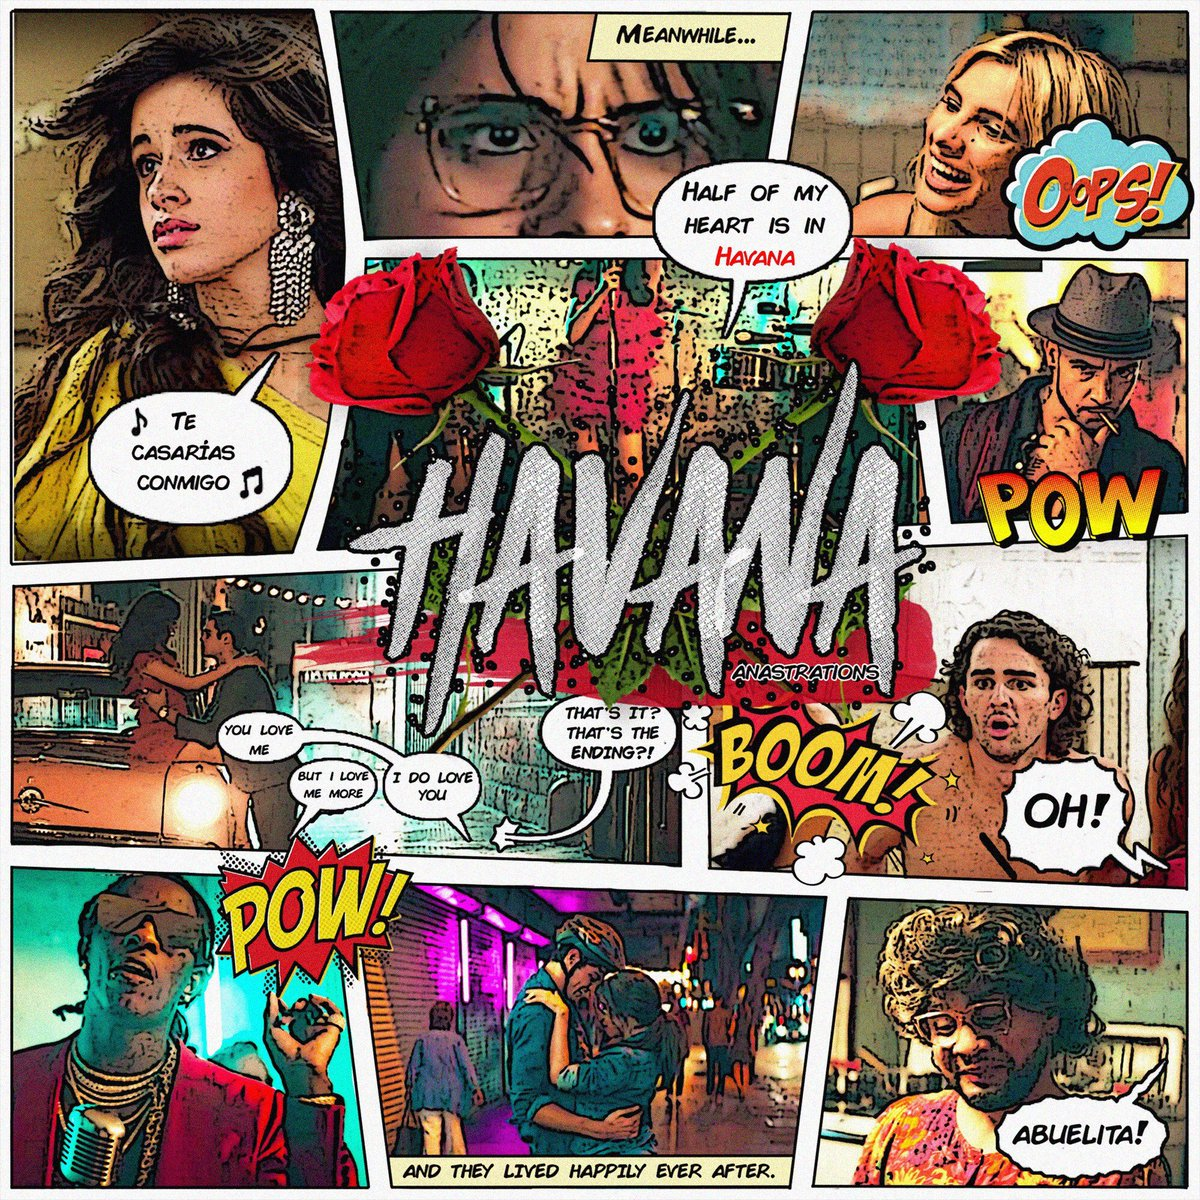 WHOAHHH!! We just geeked out over this. @zapdawn you're so talented!! i wanna see other art u guys are drawing for Havana the movie...🦋